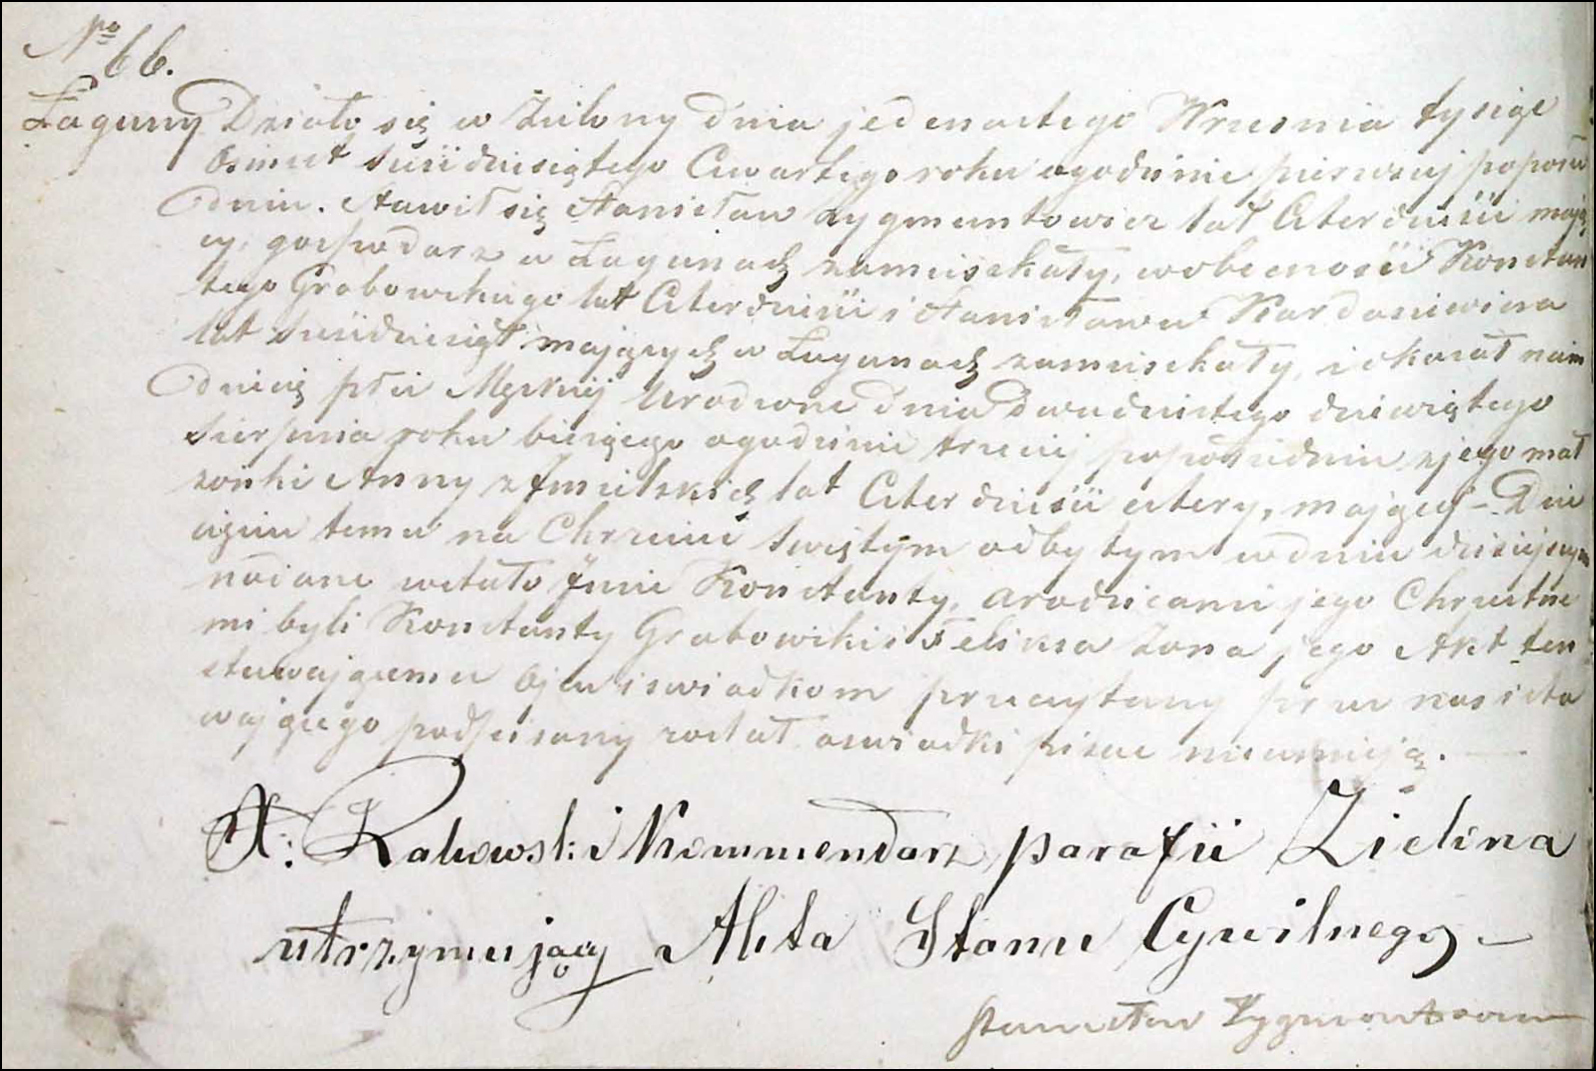 Birth and Baptismal Record for Konstanty Zygmuntowicz – 1864